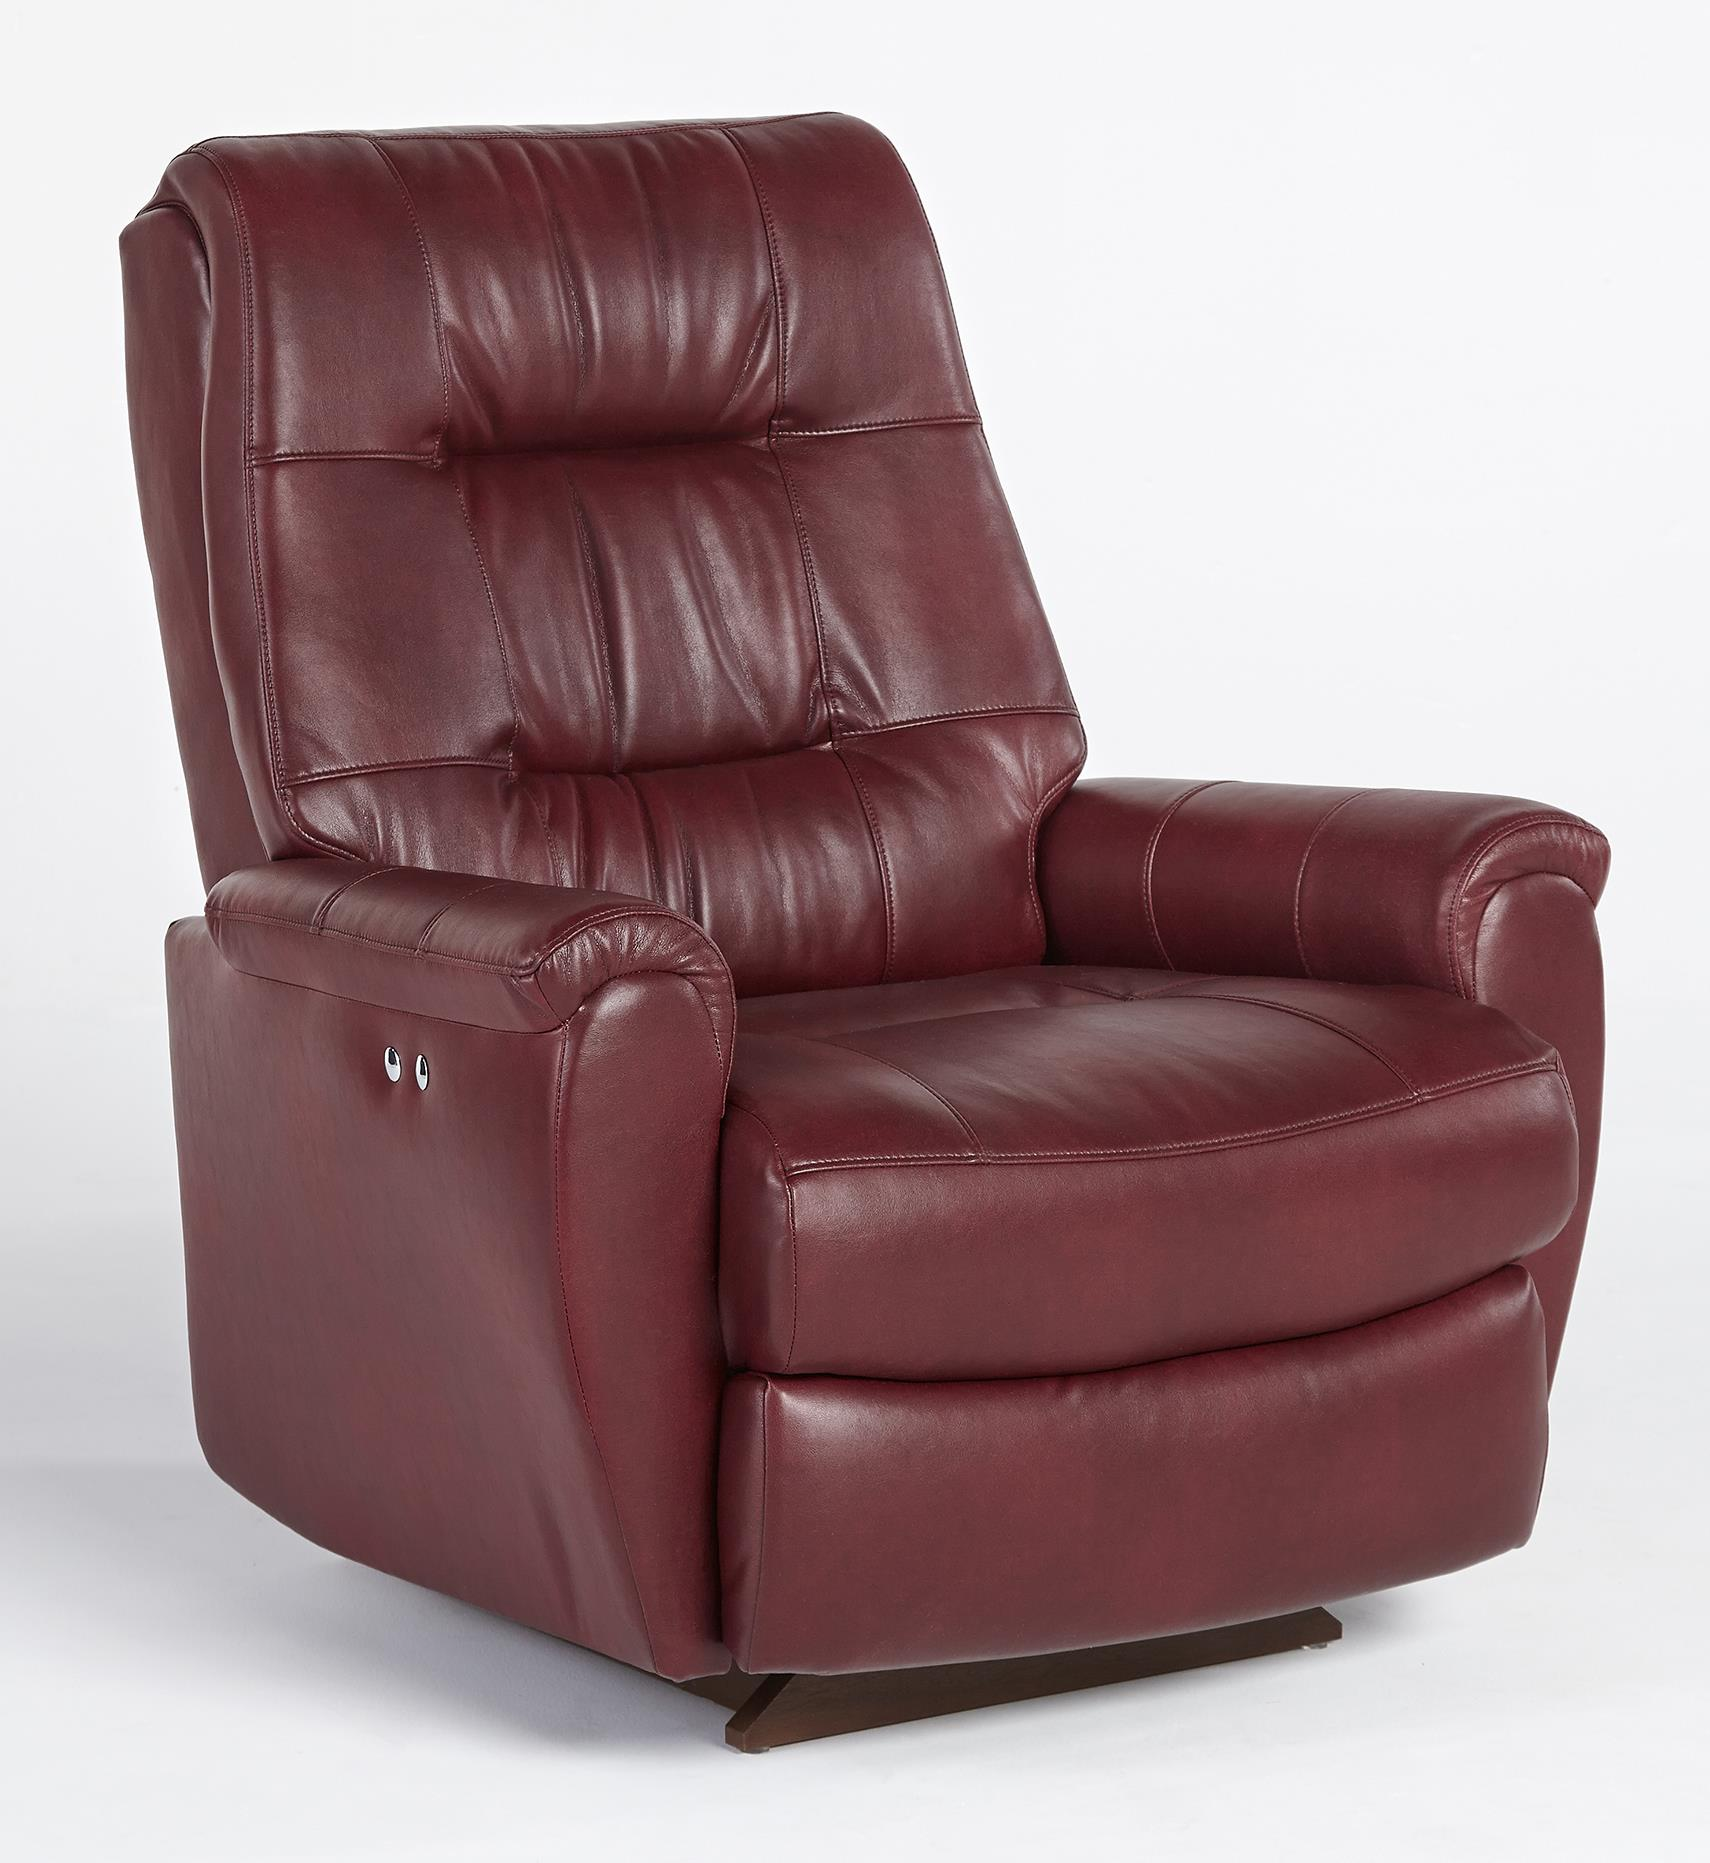 Felicia Swivel Rocker Recliner with Button-Tufted Back by ...